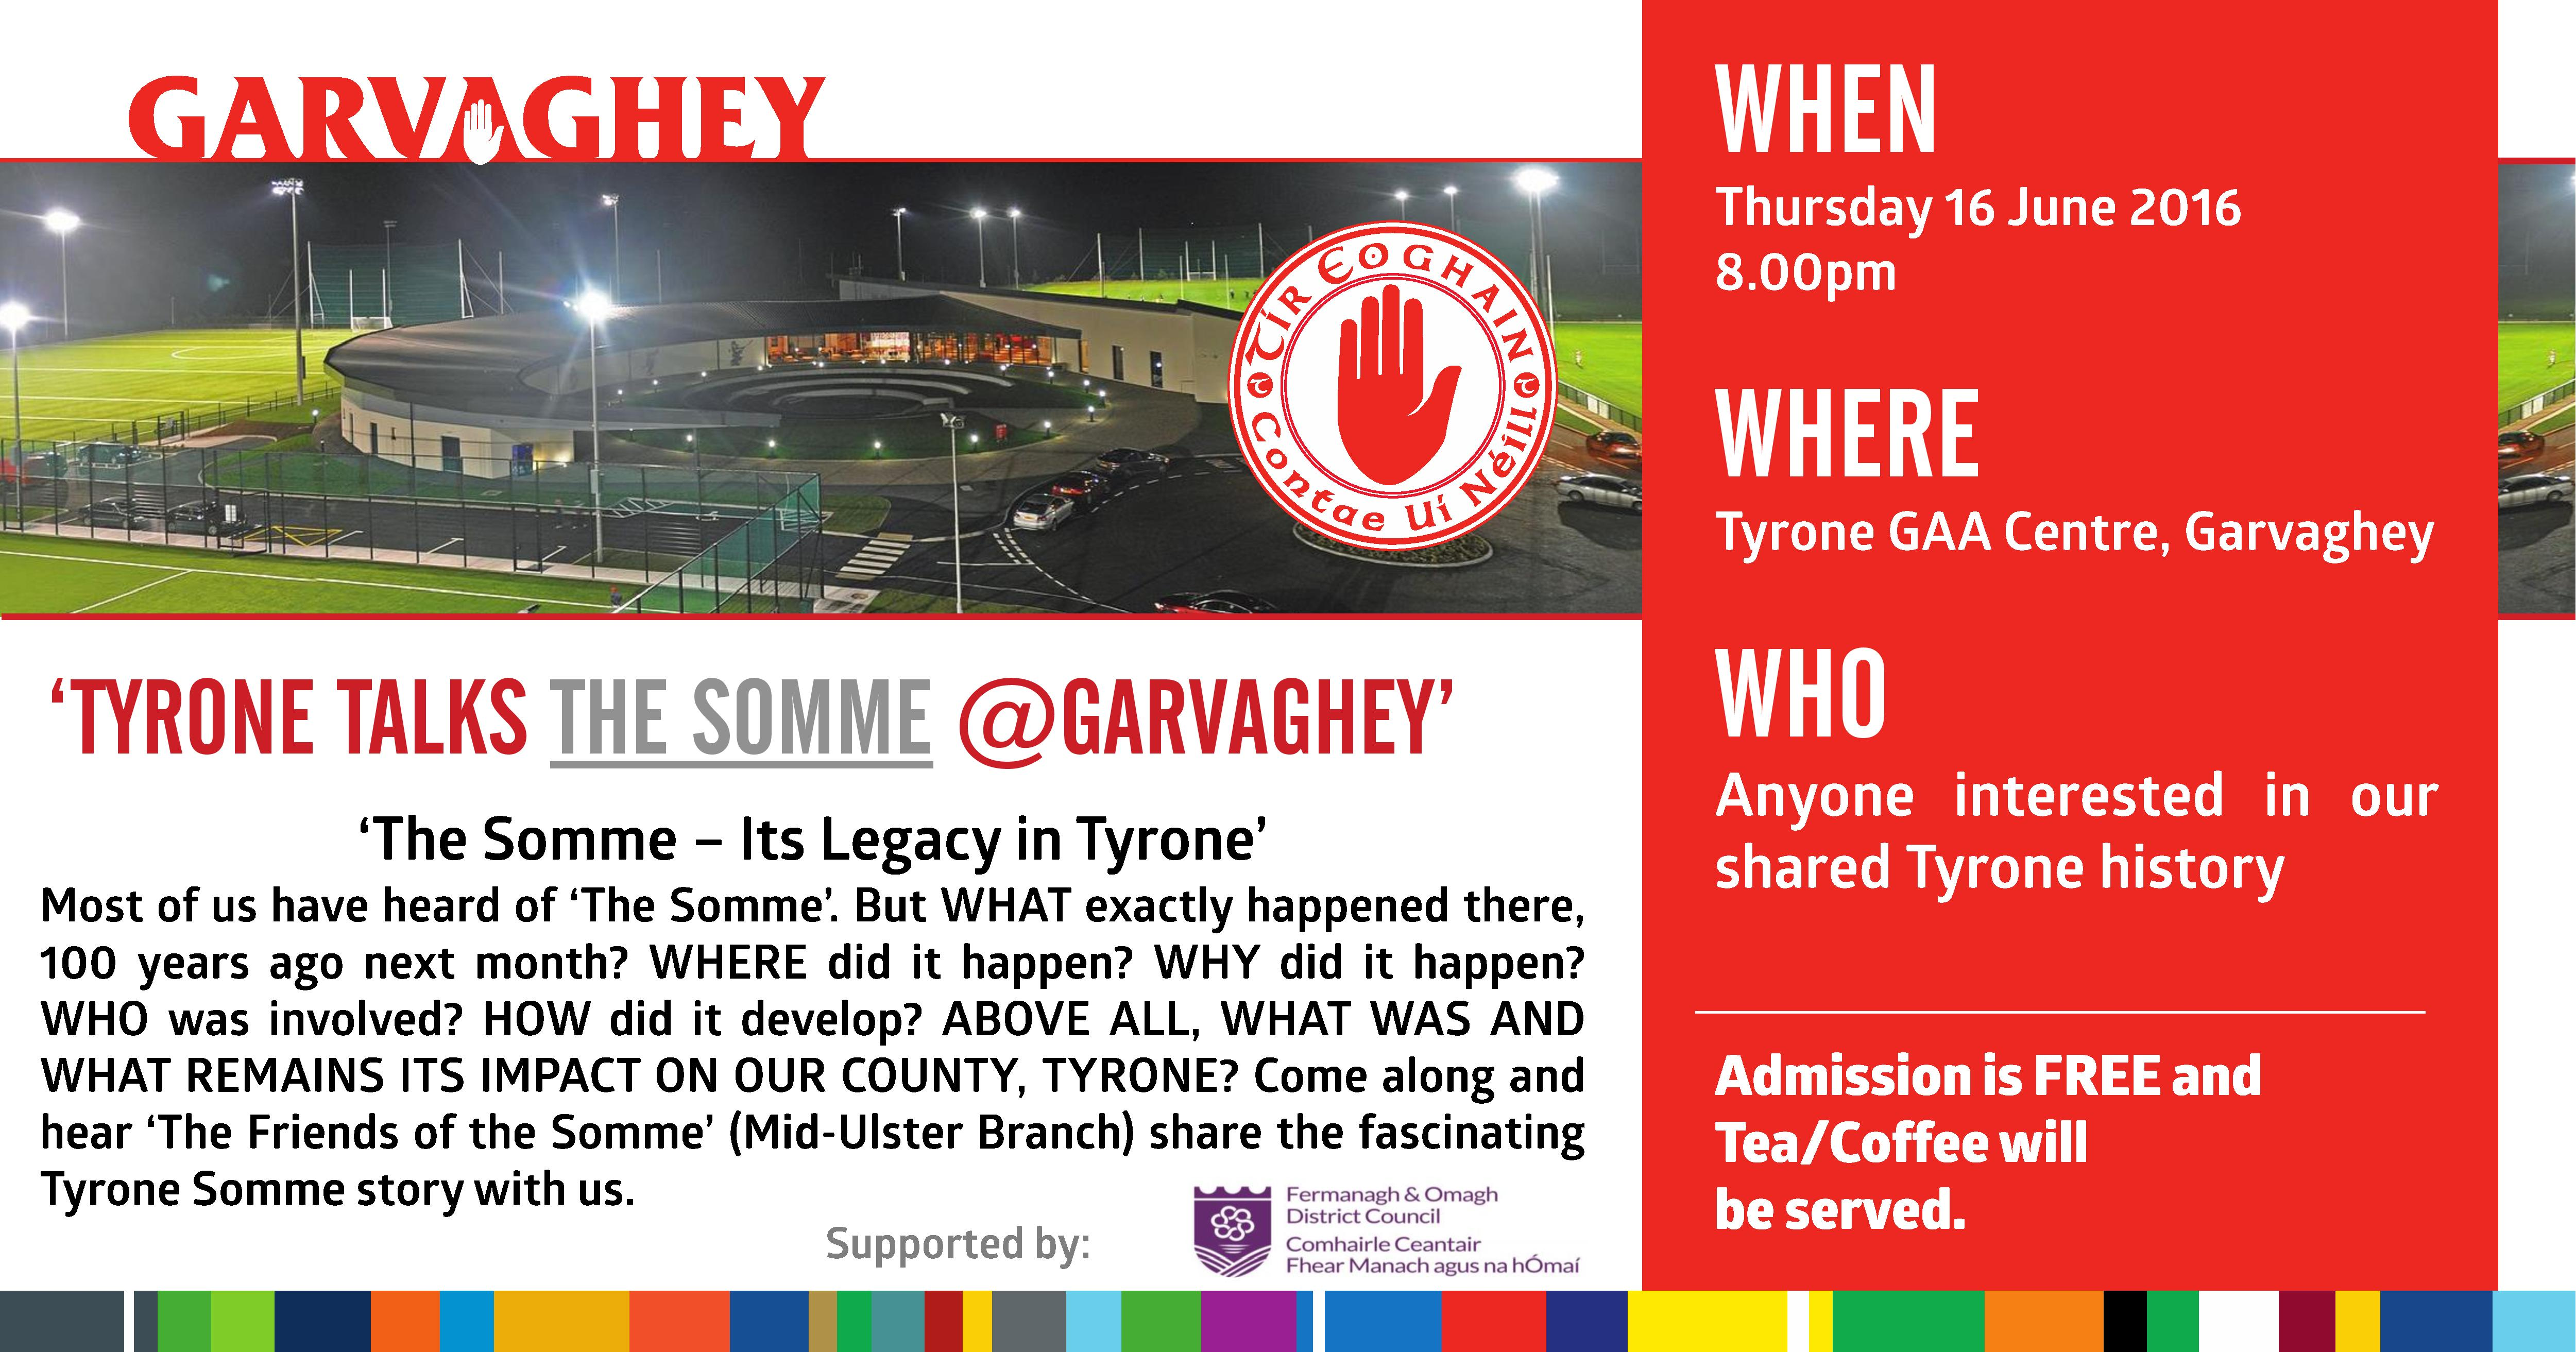 Tyrone Talks The Somme at Garvaghey